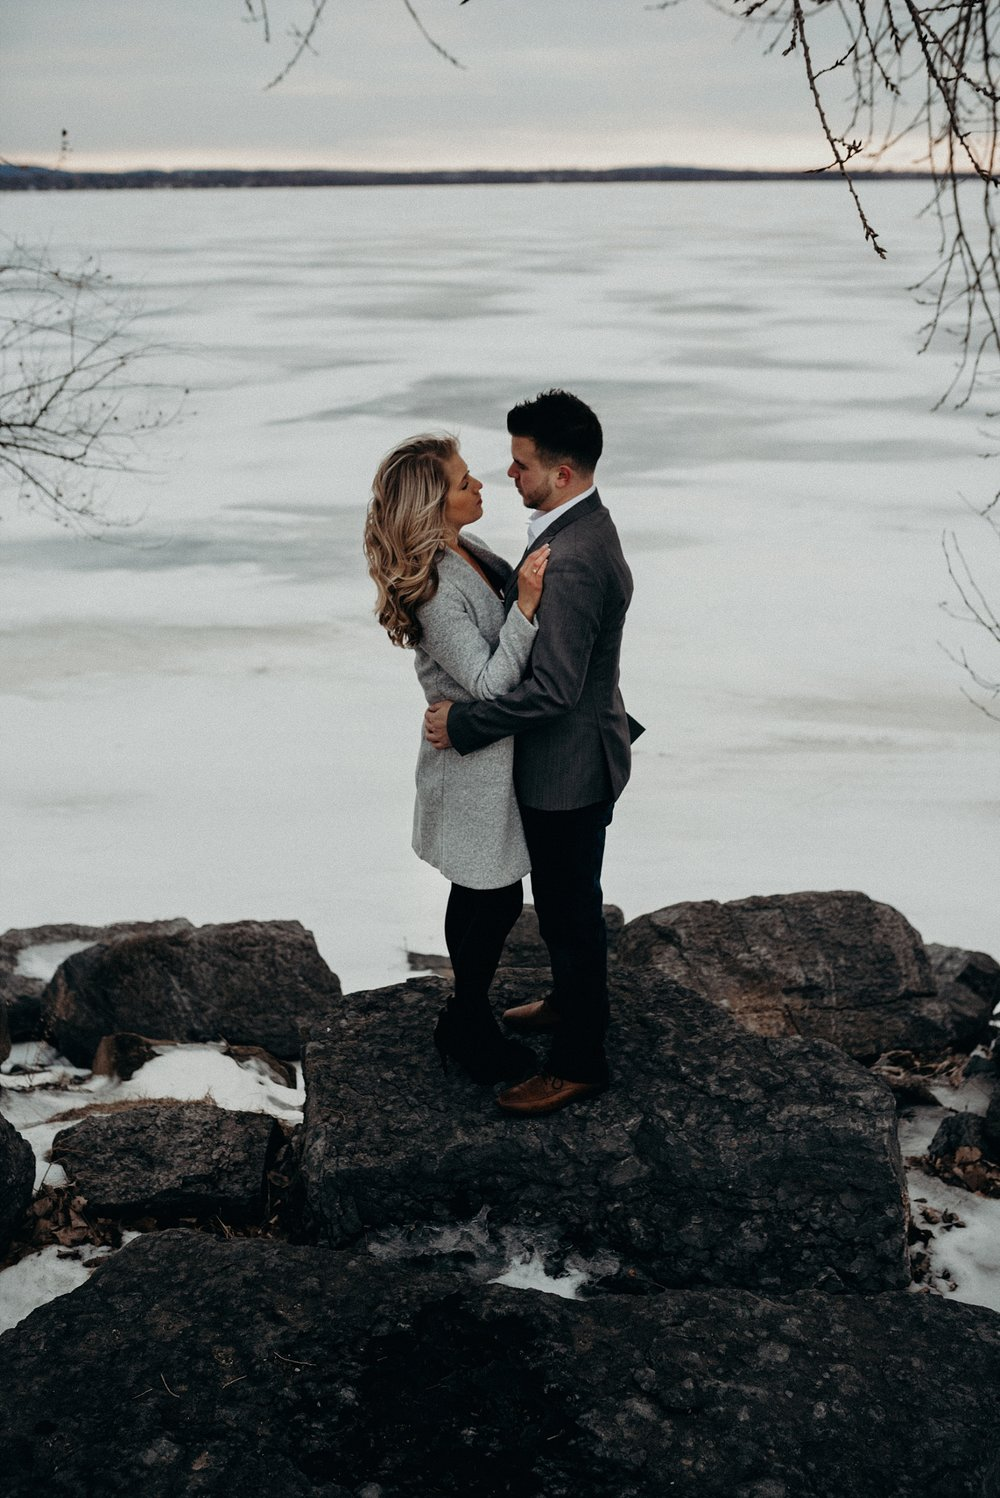 Mocha Tree Studios Ottawa Toronto Montreal Wedding and Engagement Photographer and Videographer Dark Moody Intimate Authentic Modern Romantic Cinematic Best Candid Nepean Sailing Club Andew Haydon Park 8